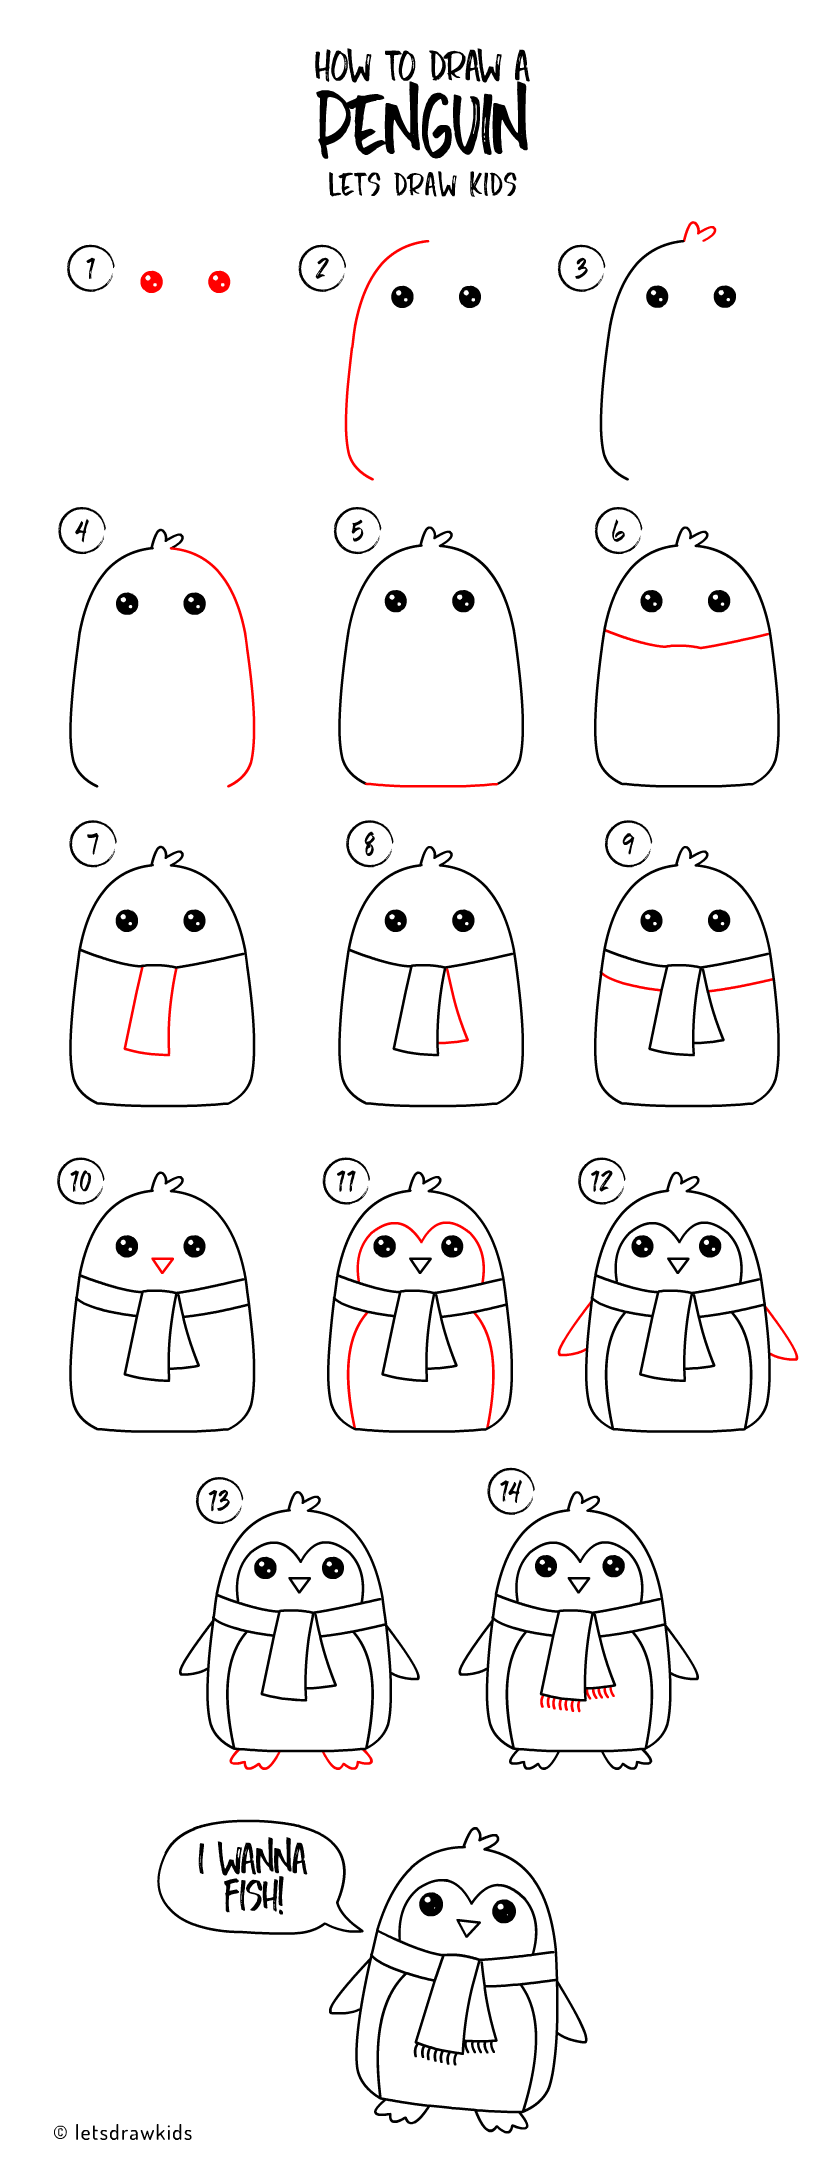 How To Draw A Penguin Easy Drawing Step By Step Perfect For Kids